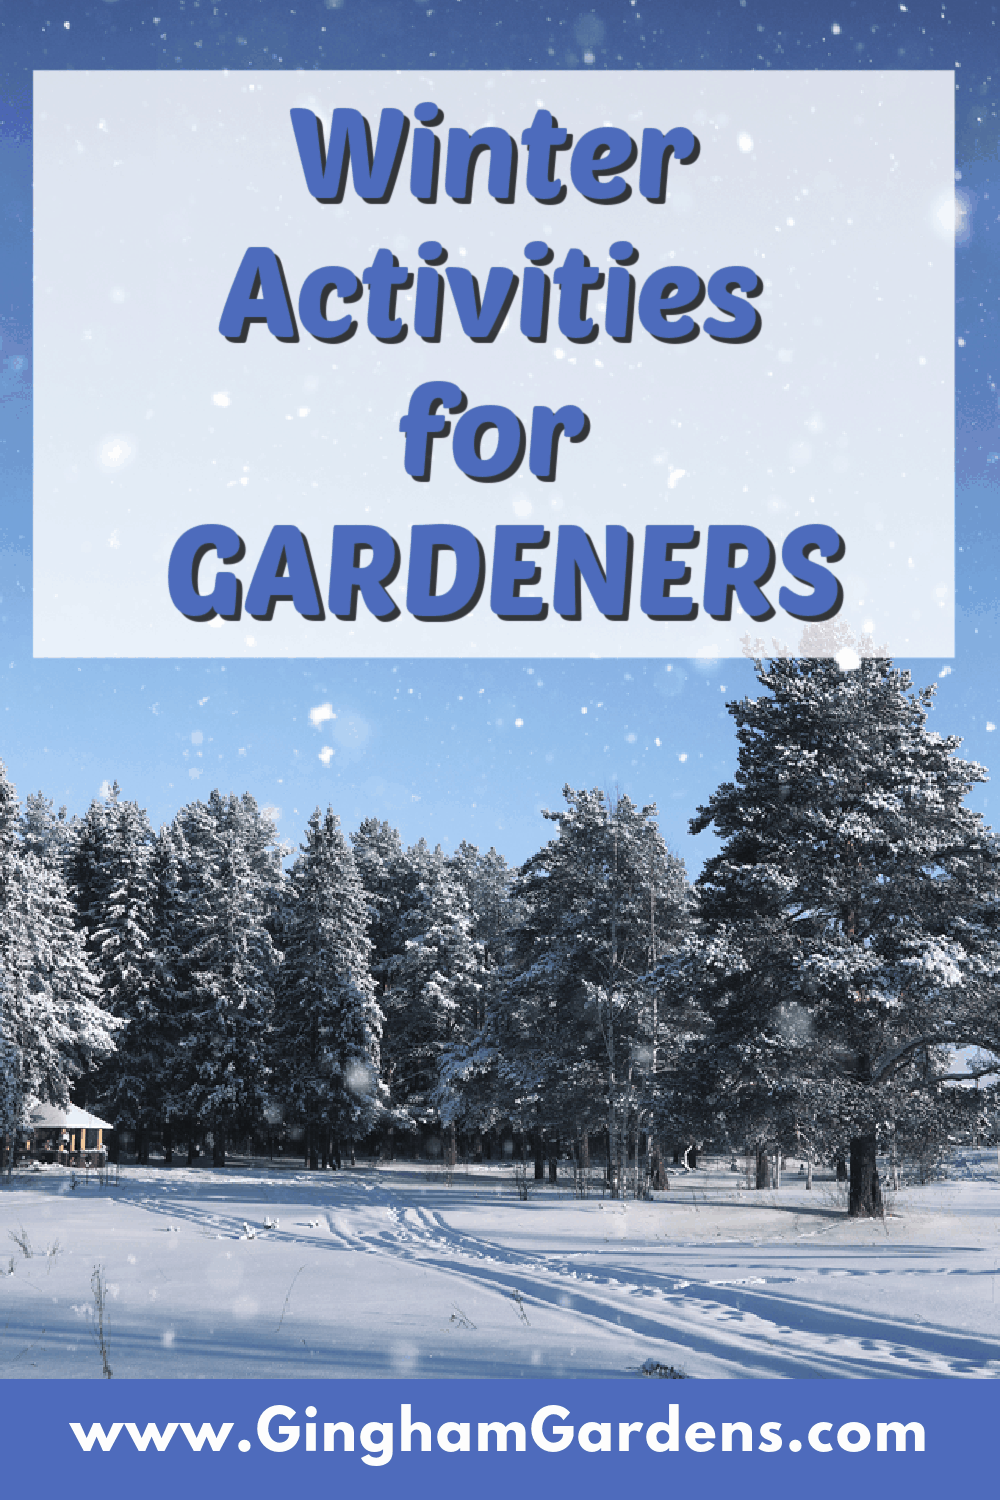 Image of an outdoor winter scene with text overlay - Winter Activities for Gardeners